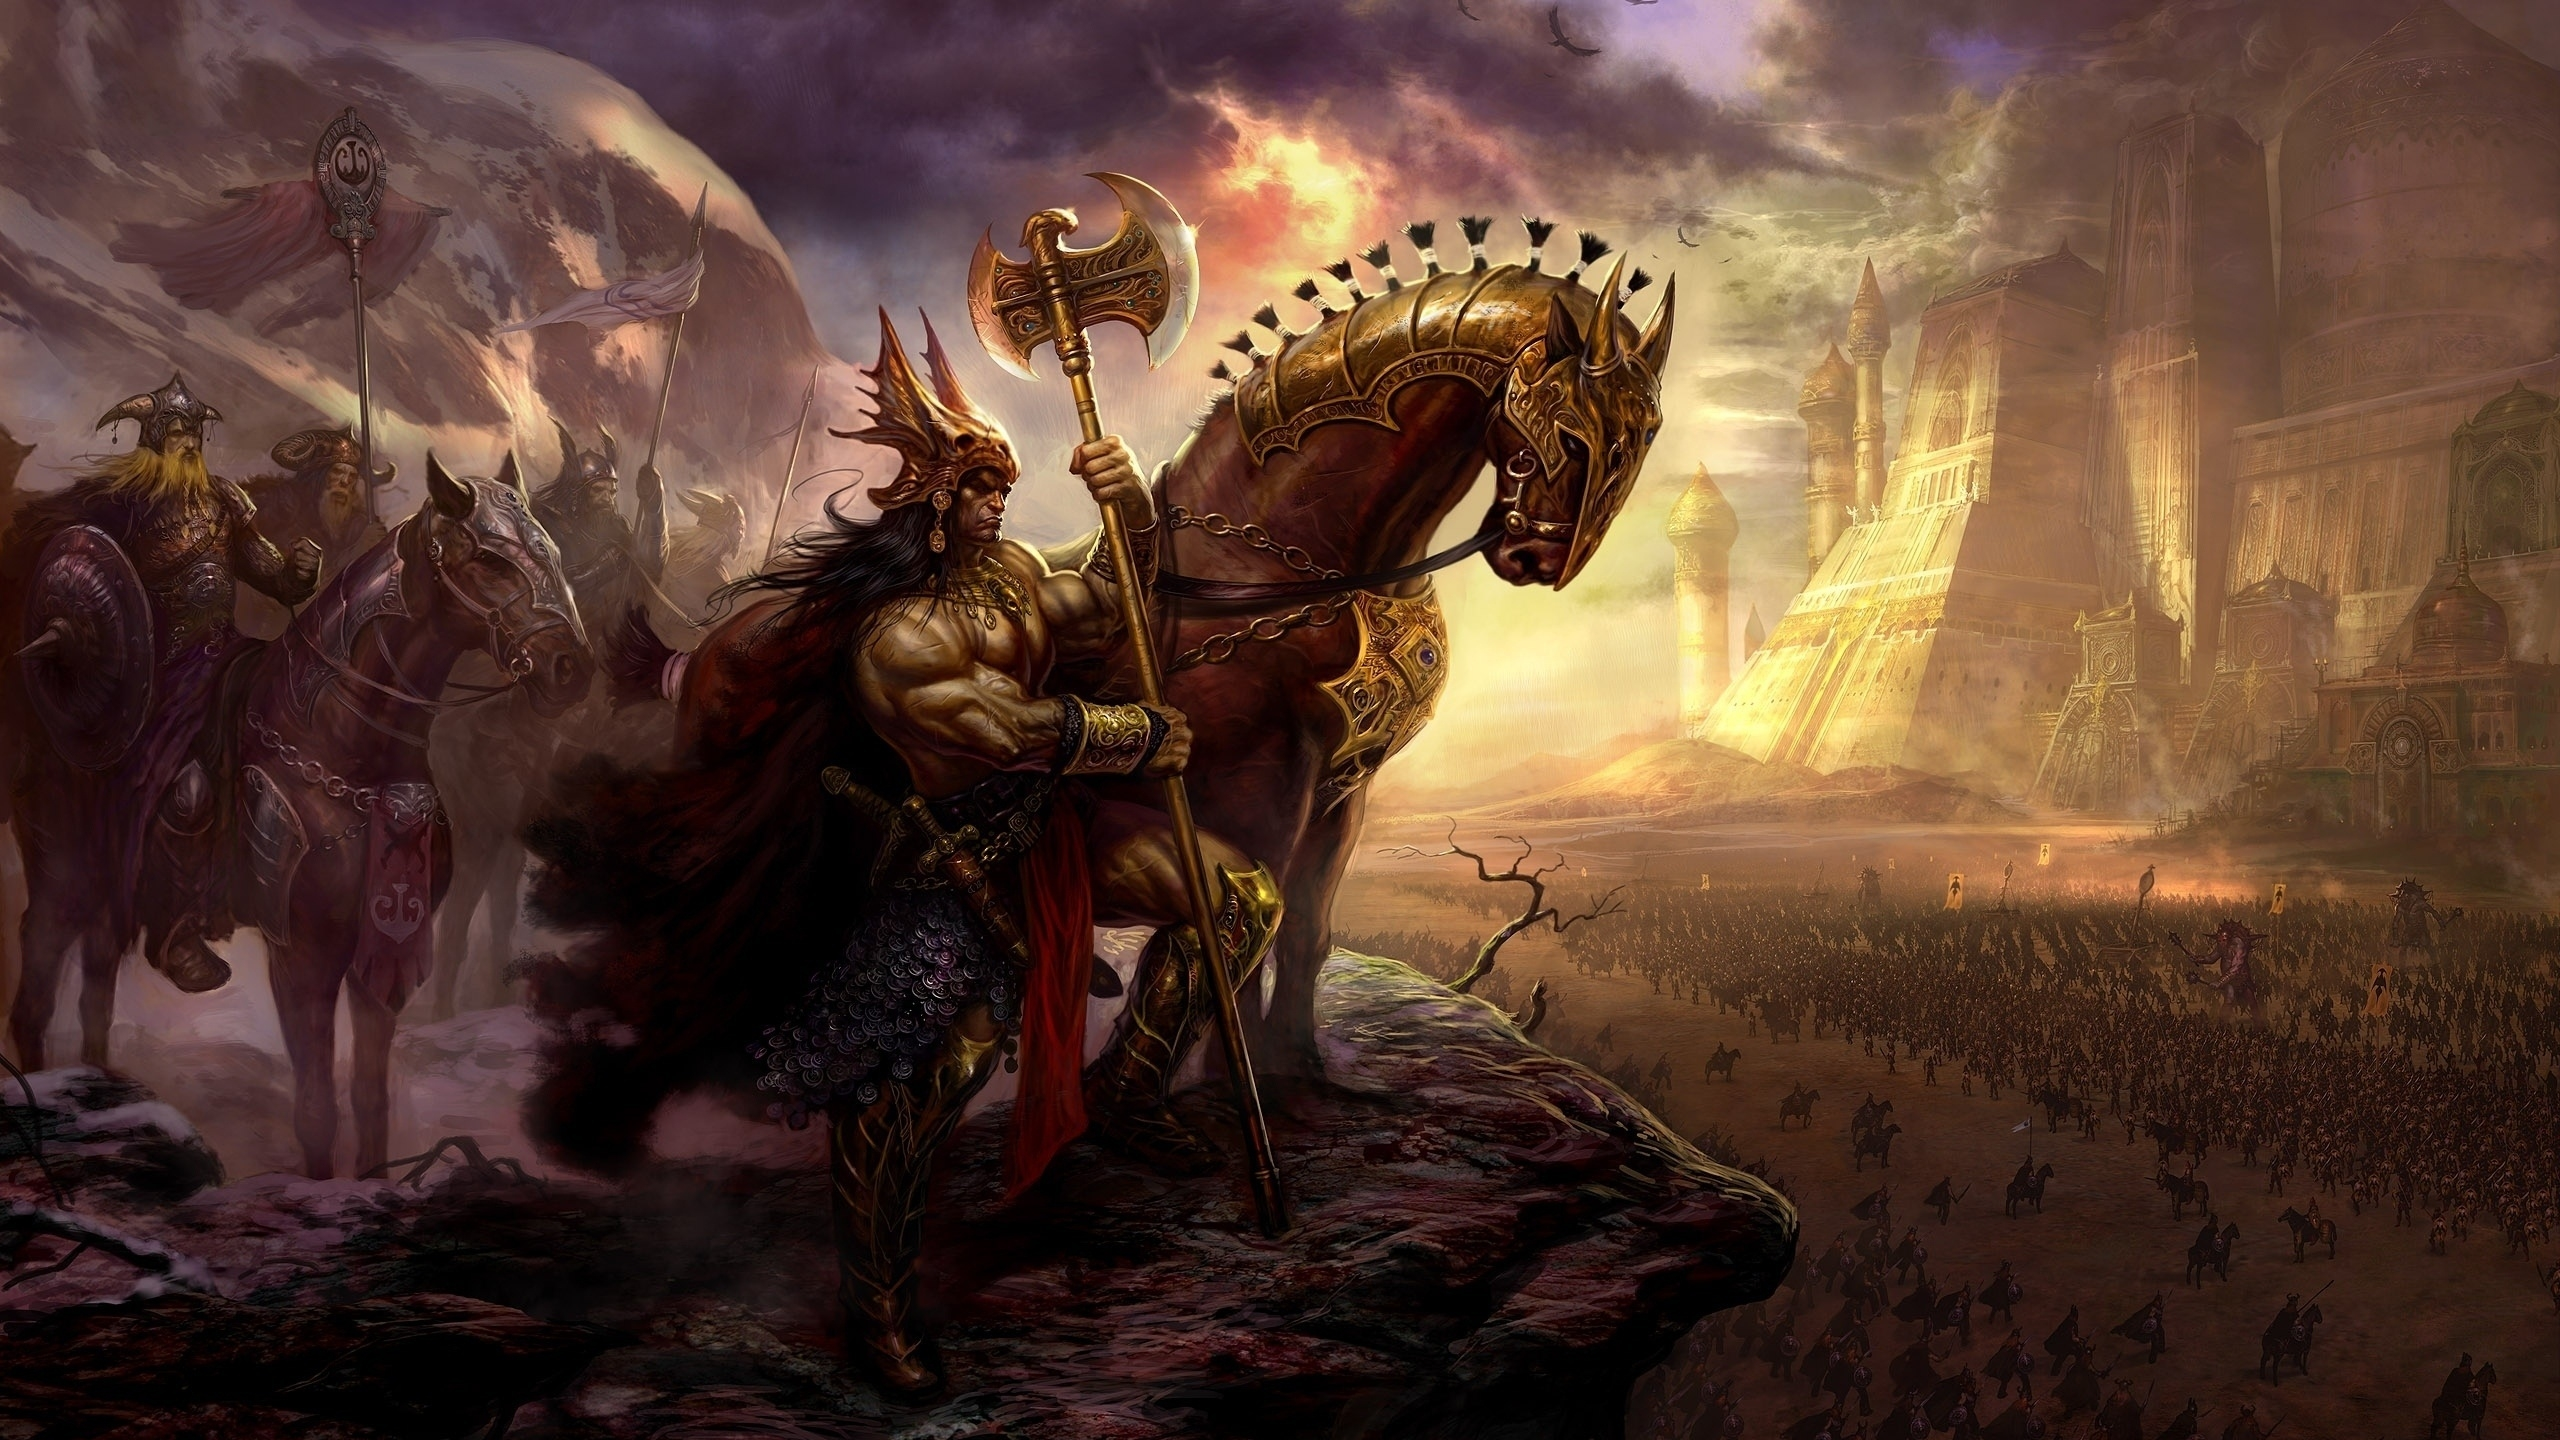 Age Of Conan Computer Wallpapers Desktop Backgrounds 2560x1440